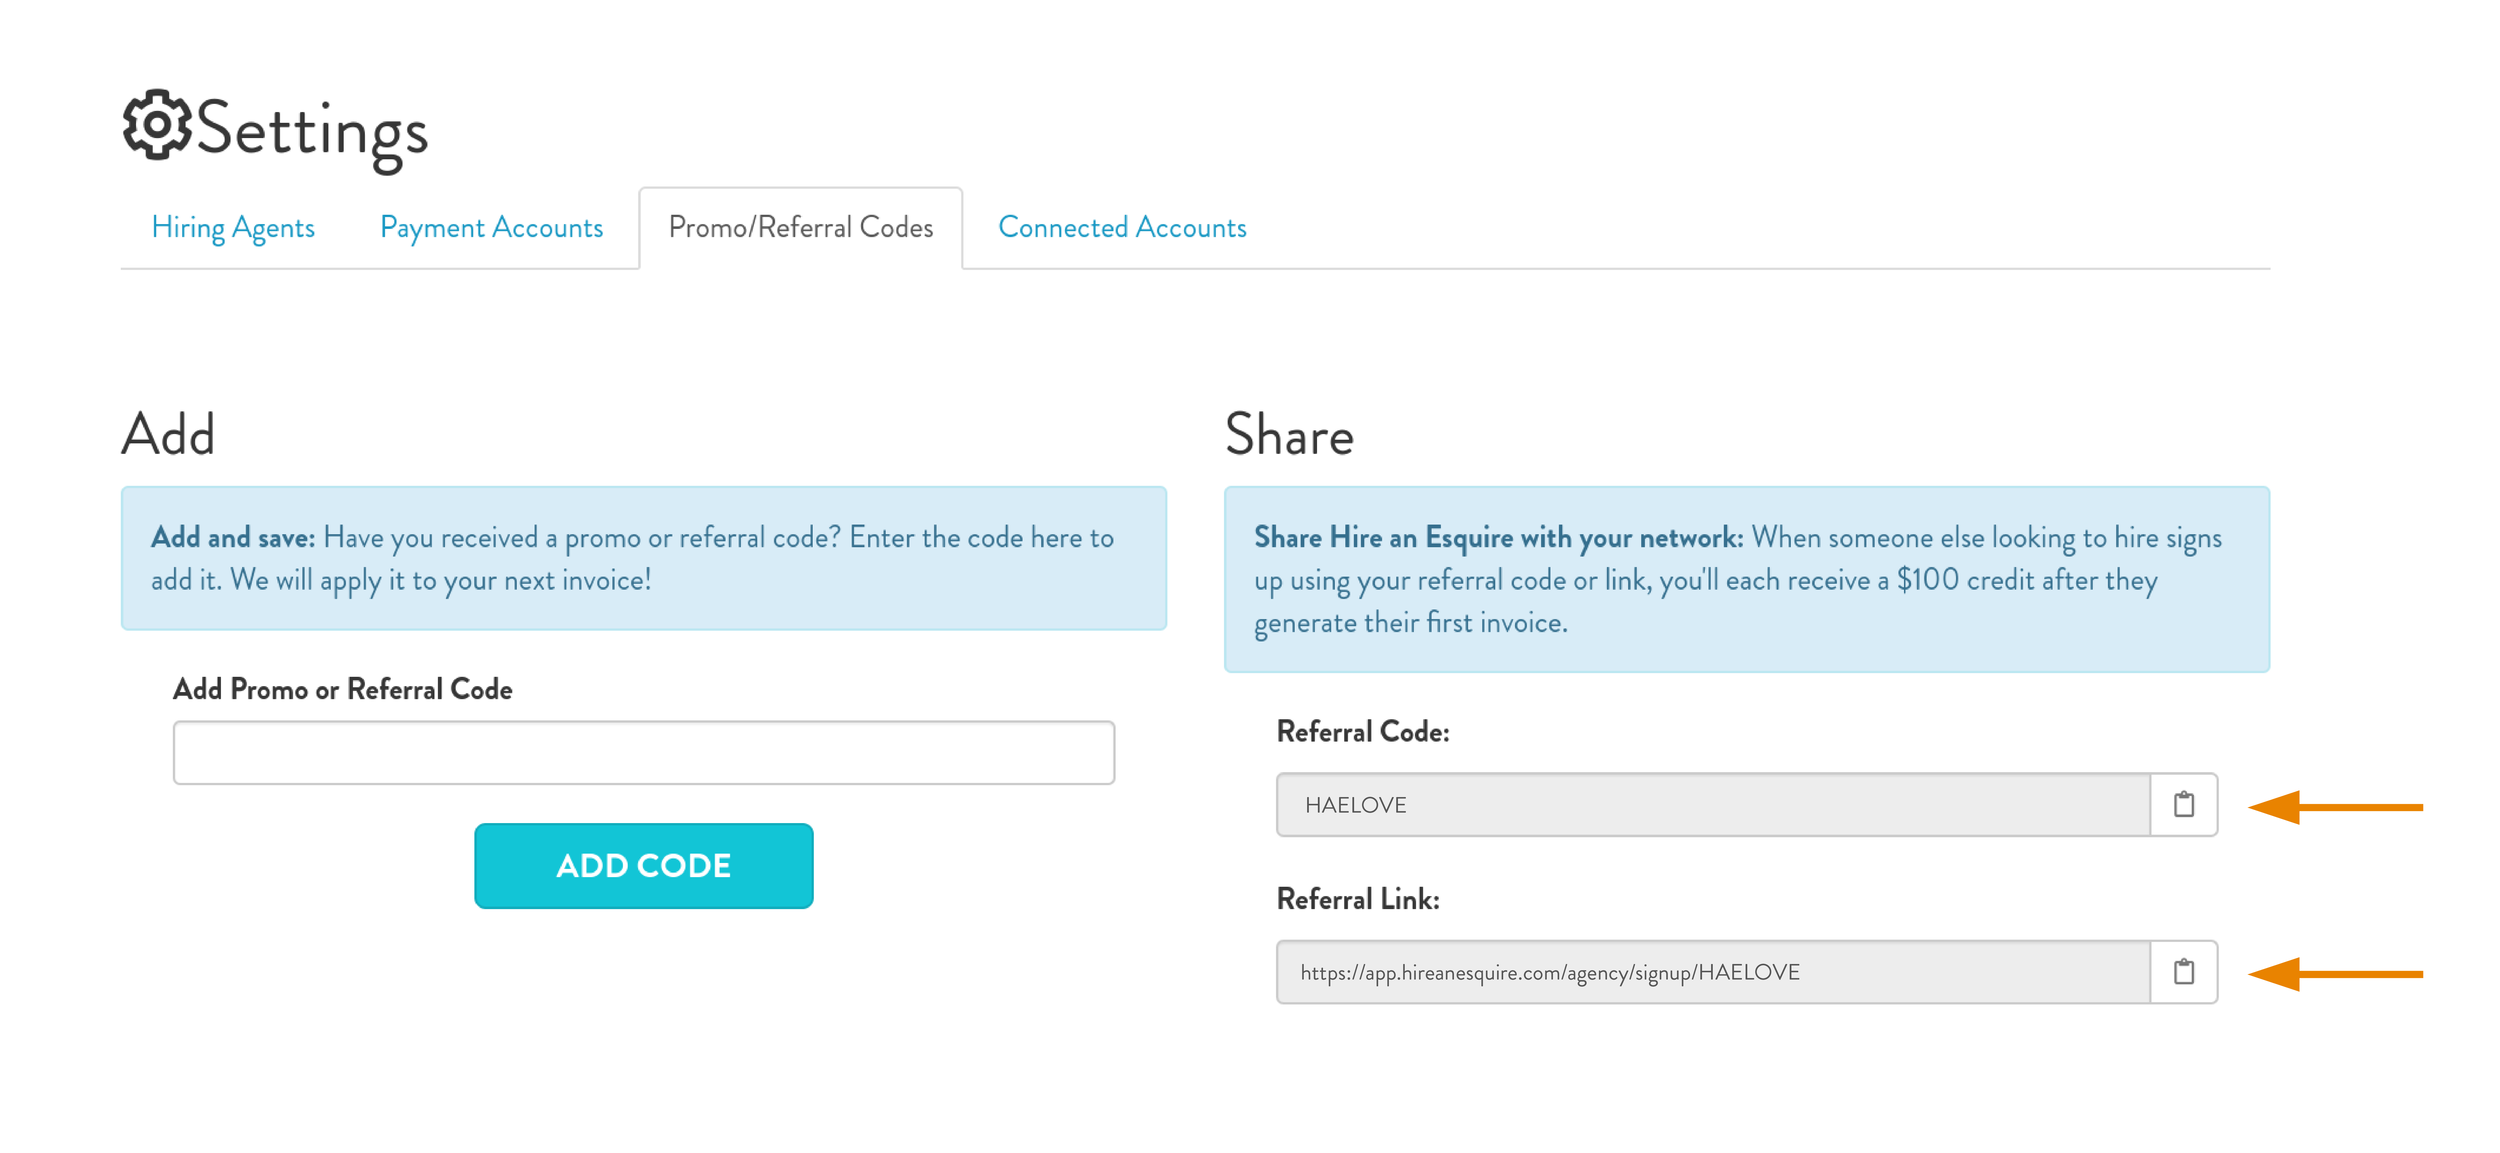 hire an esquire referral share settings for legal recruiters and legal agencies.png